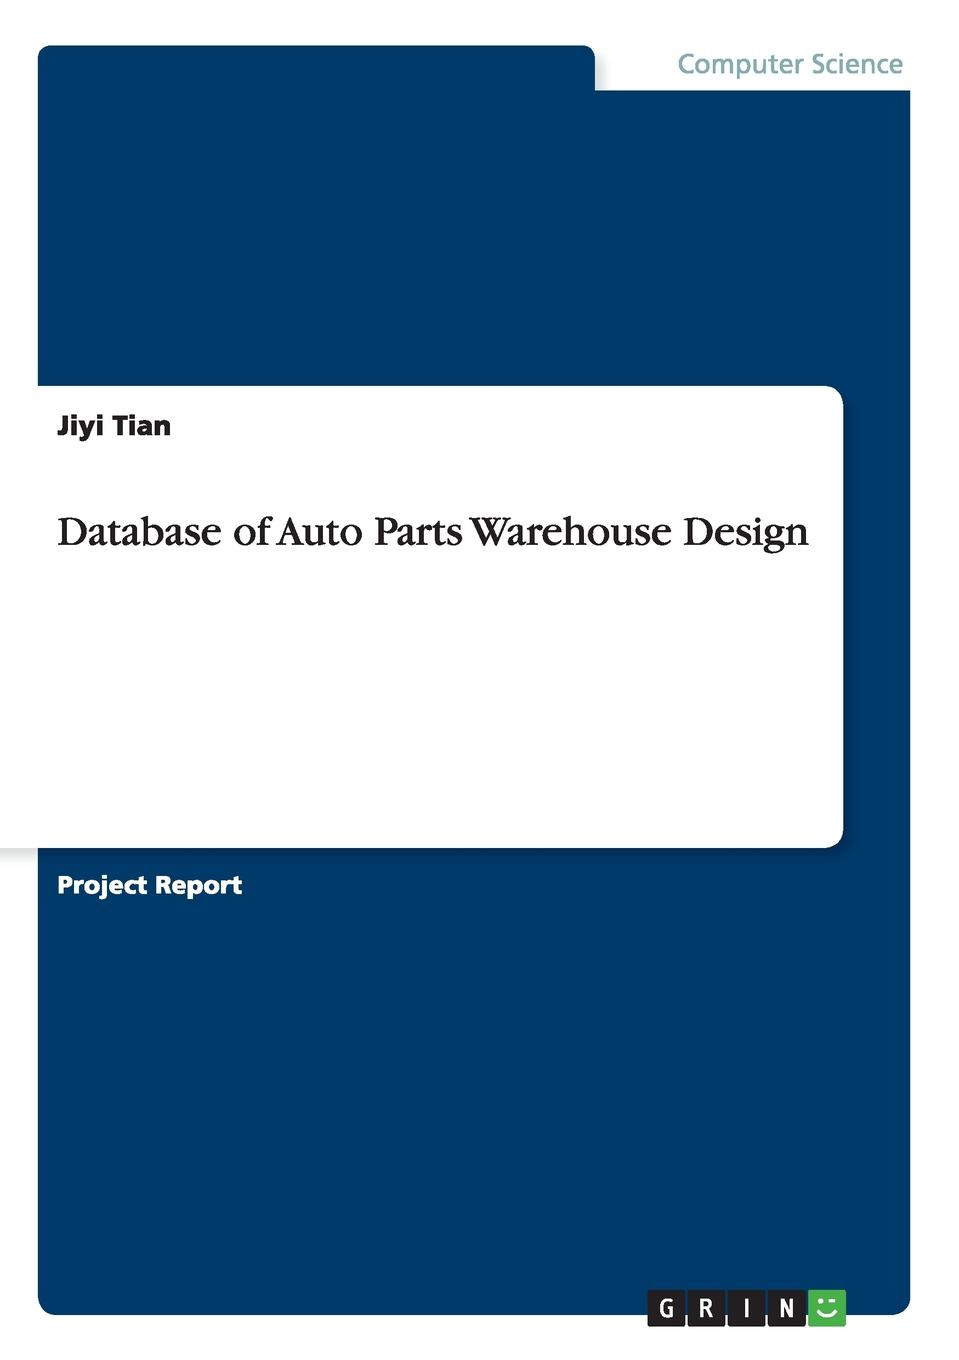 Jiyi Tian Database of Auto Parts Warehouse Design andrew frawley igniting customer connections fire up your company s growth by multiplying customer experience and engagement